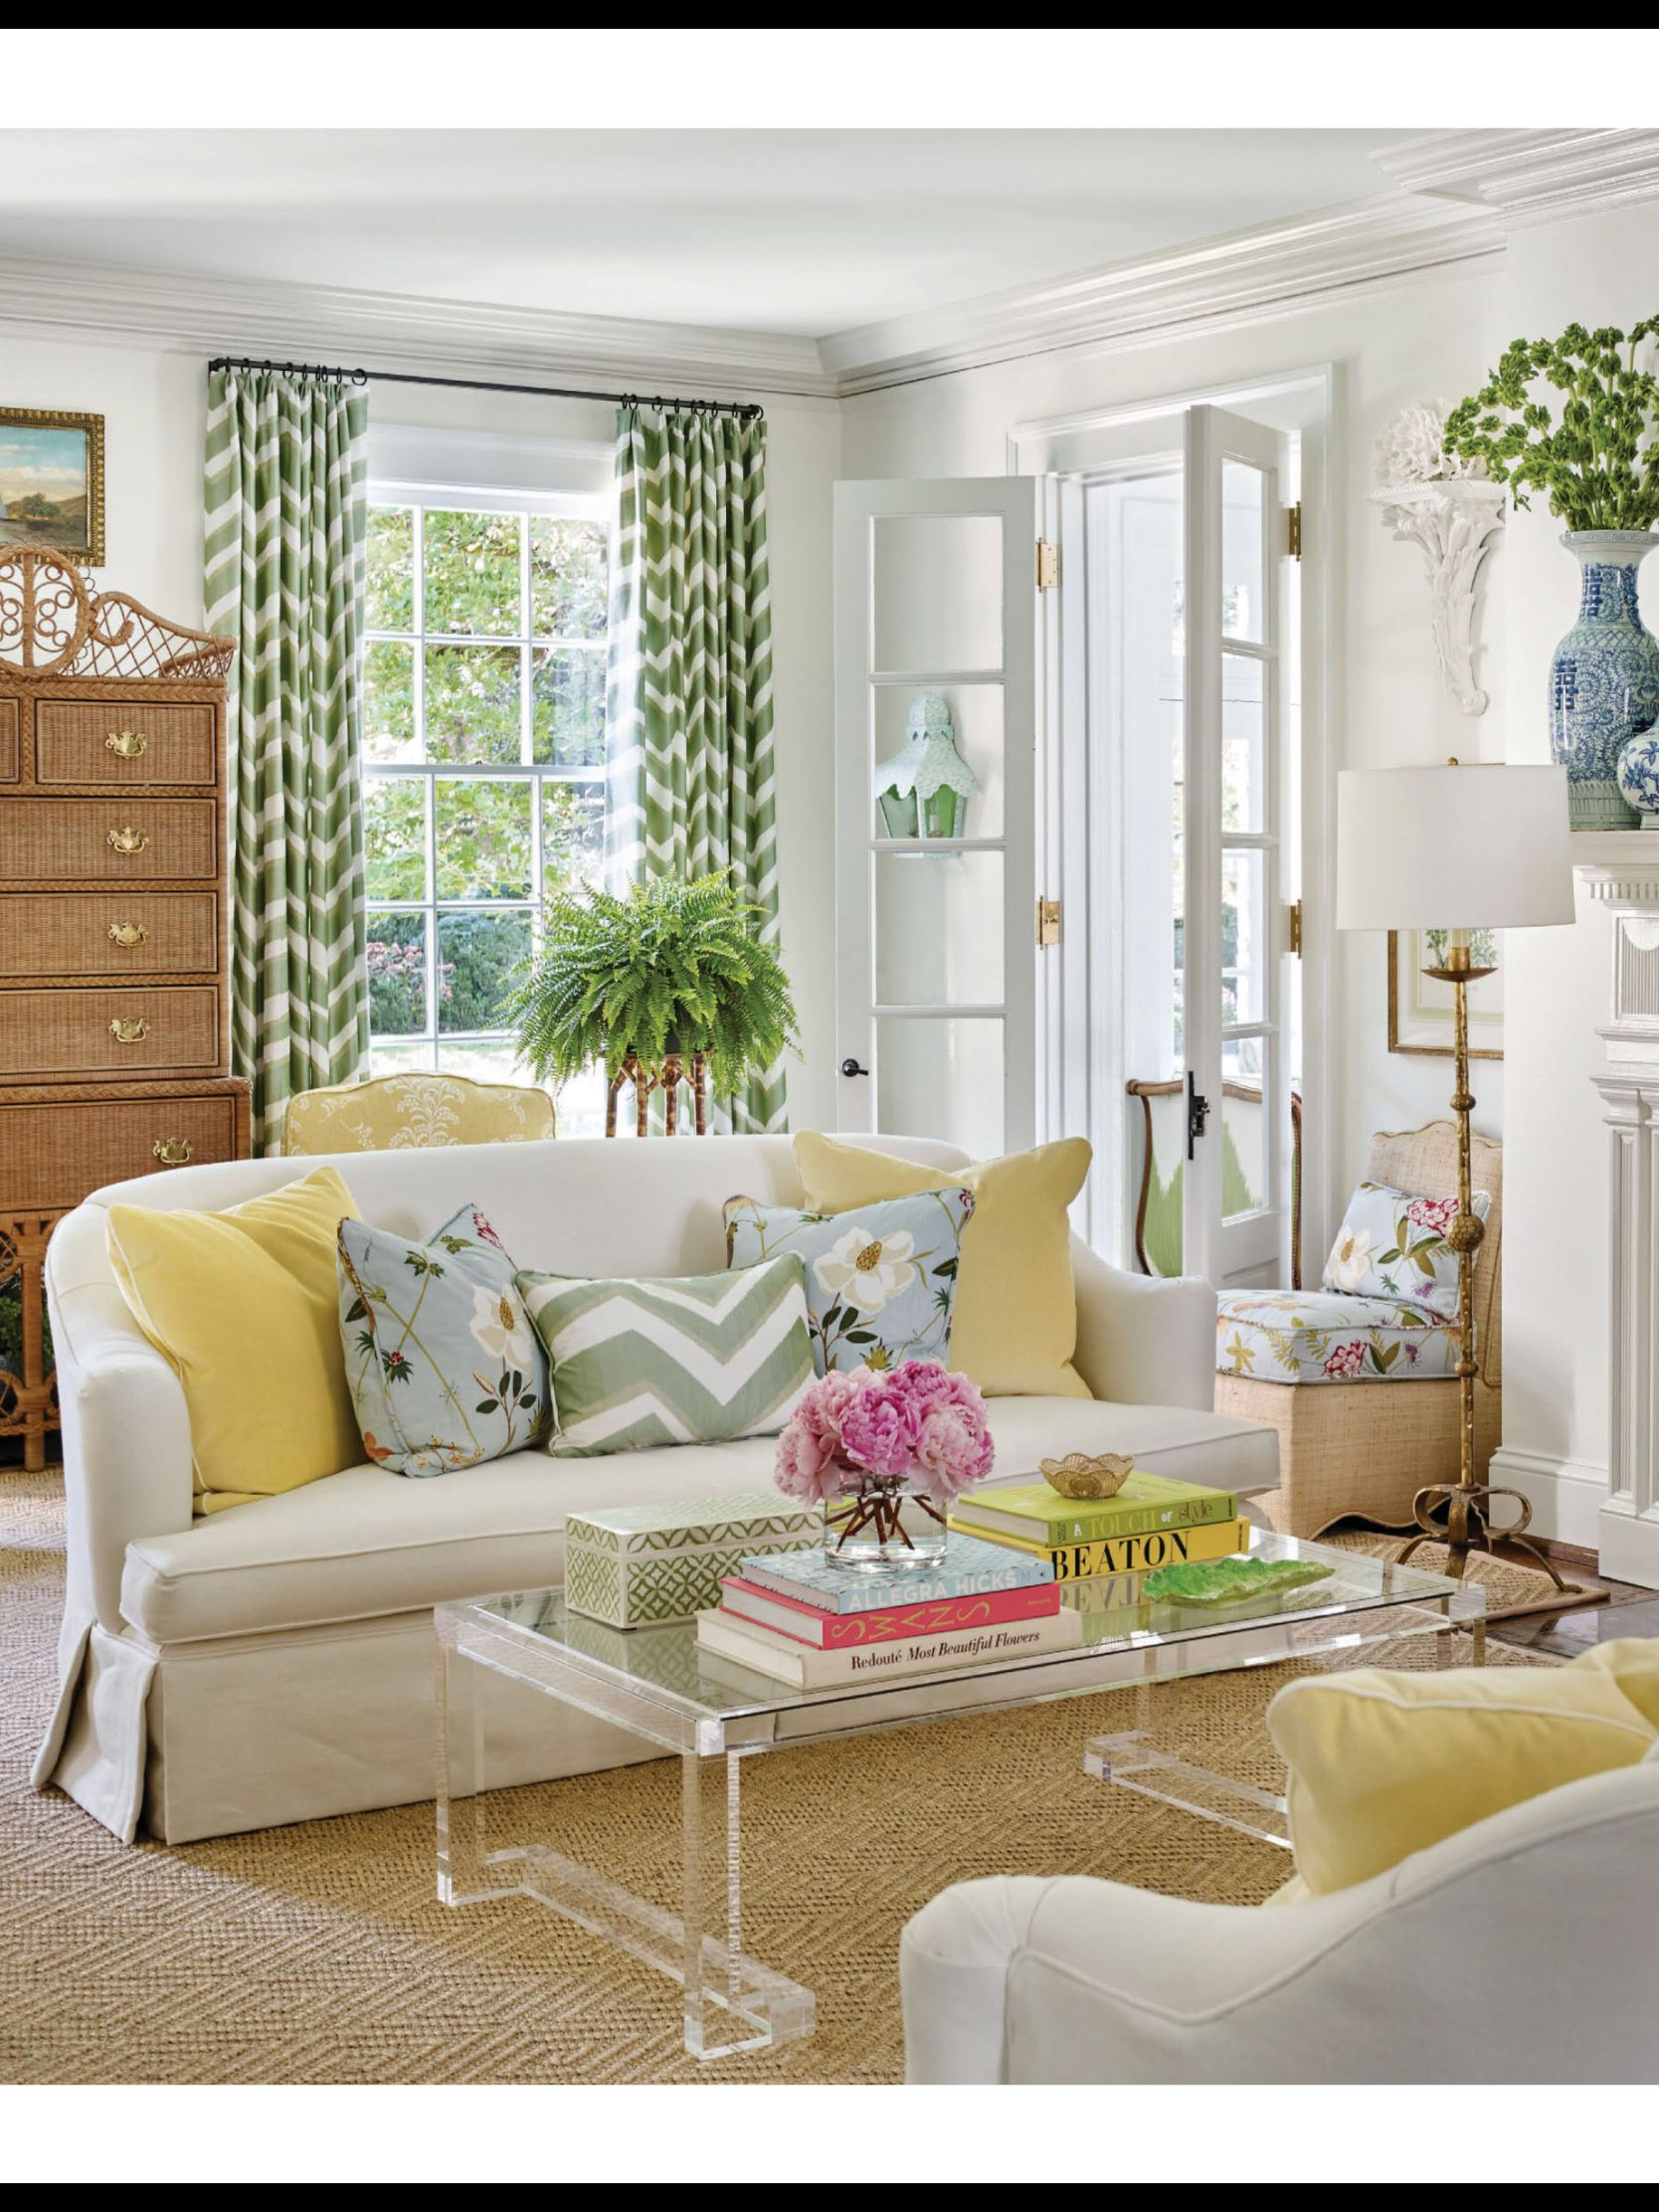 Worth The Wait From Traditional Home May June 2018 Read It On The Texture App Unlimited Access To 200 T Traditional Home Magazine Living Room Designs Home